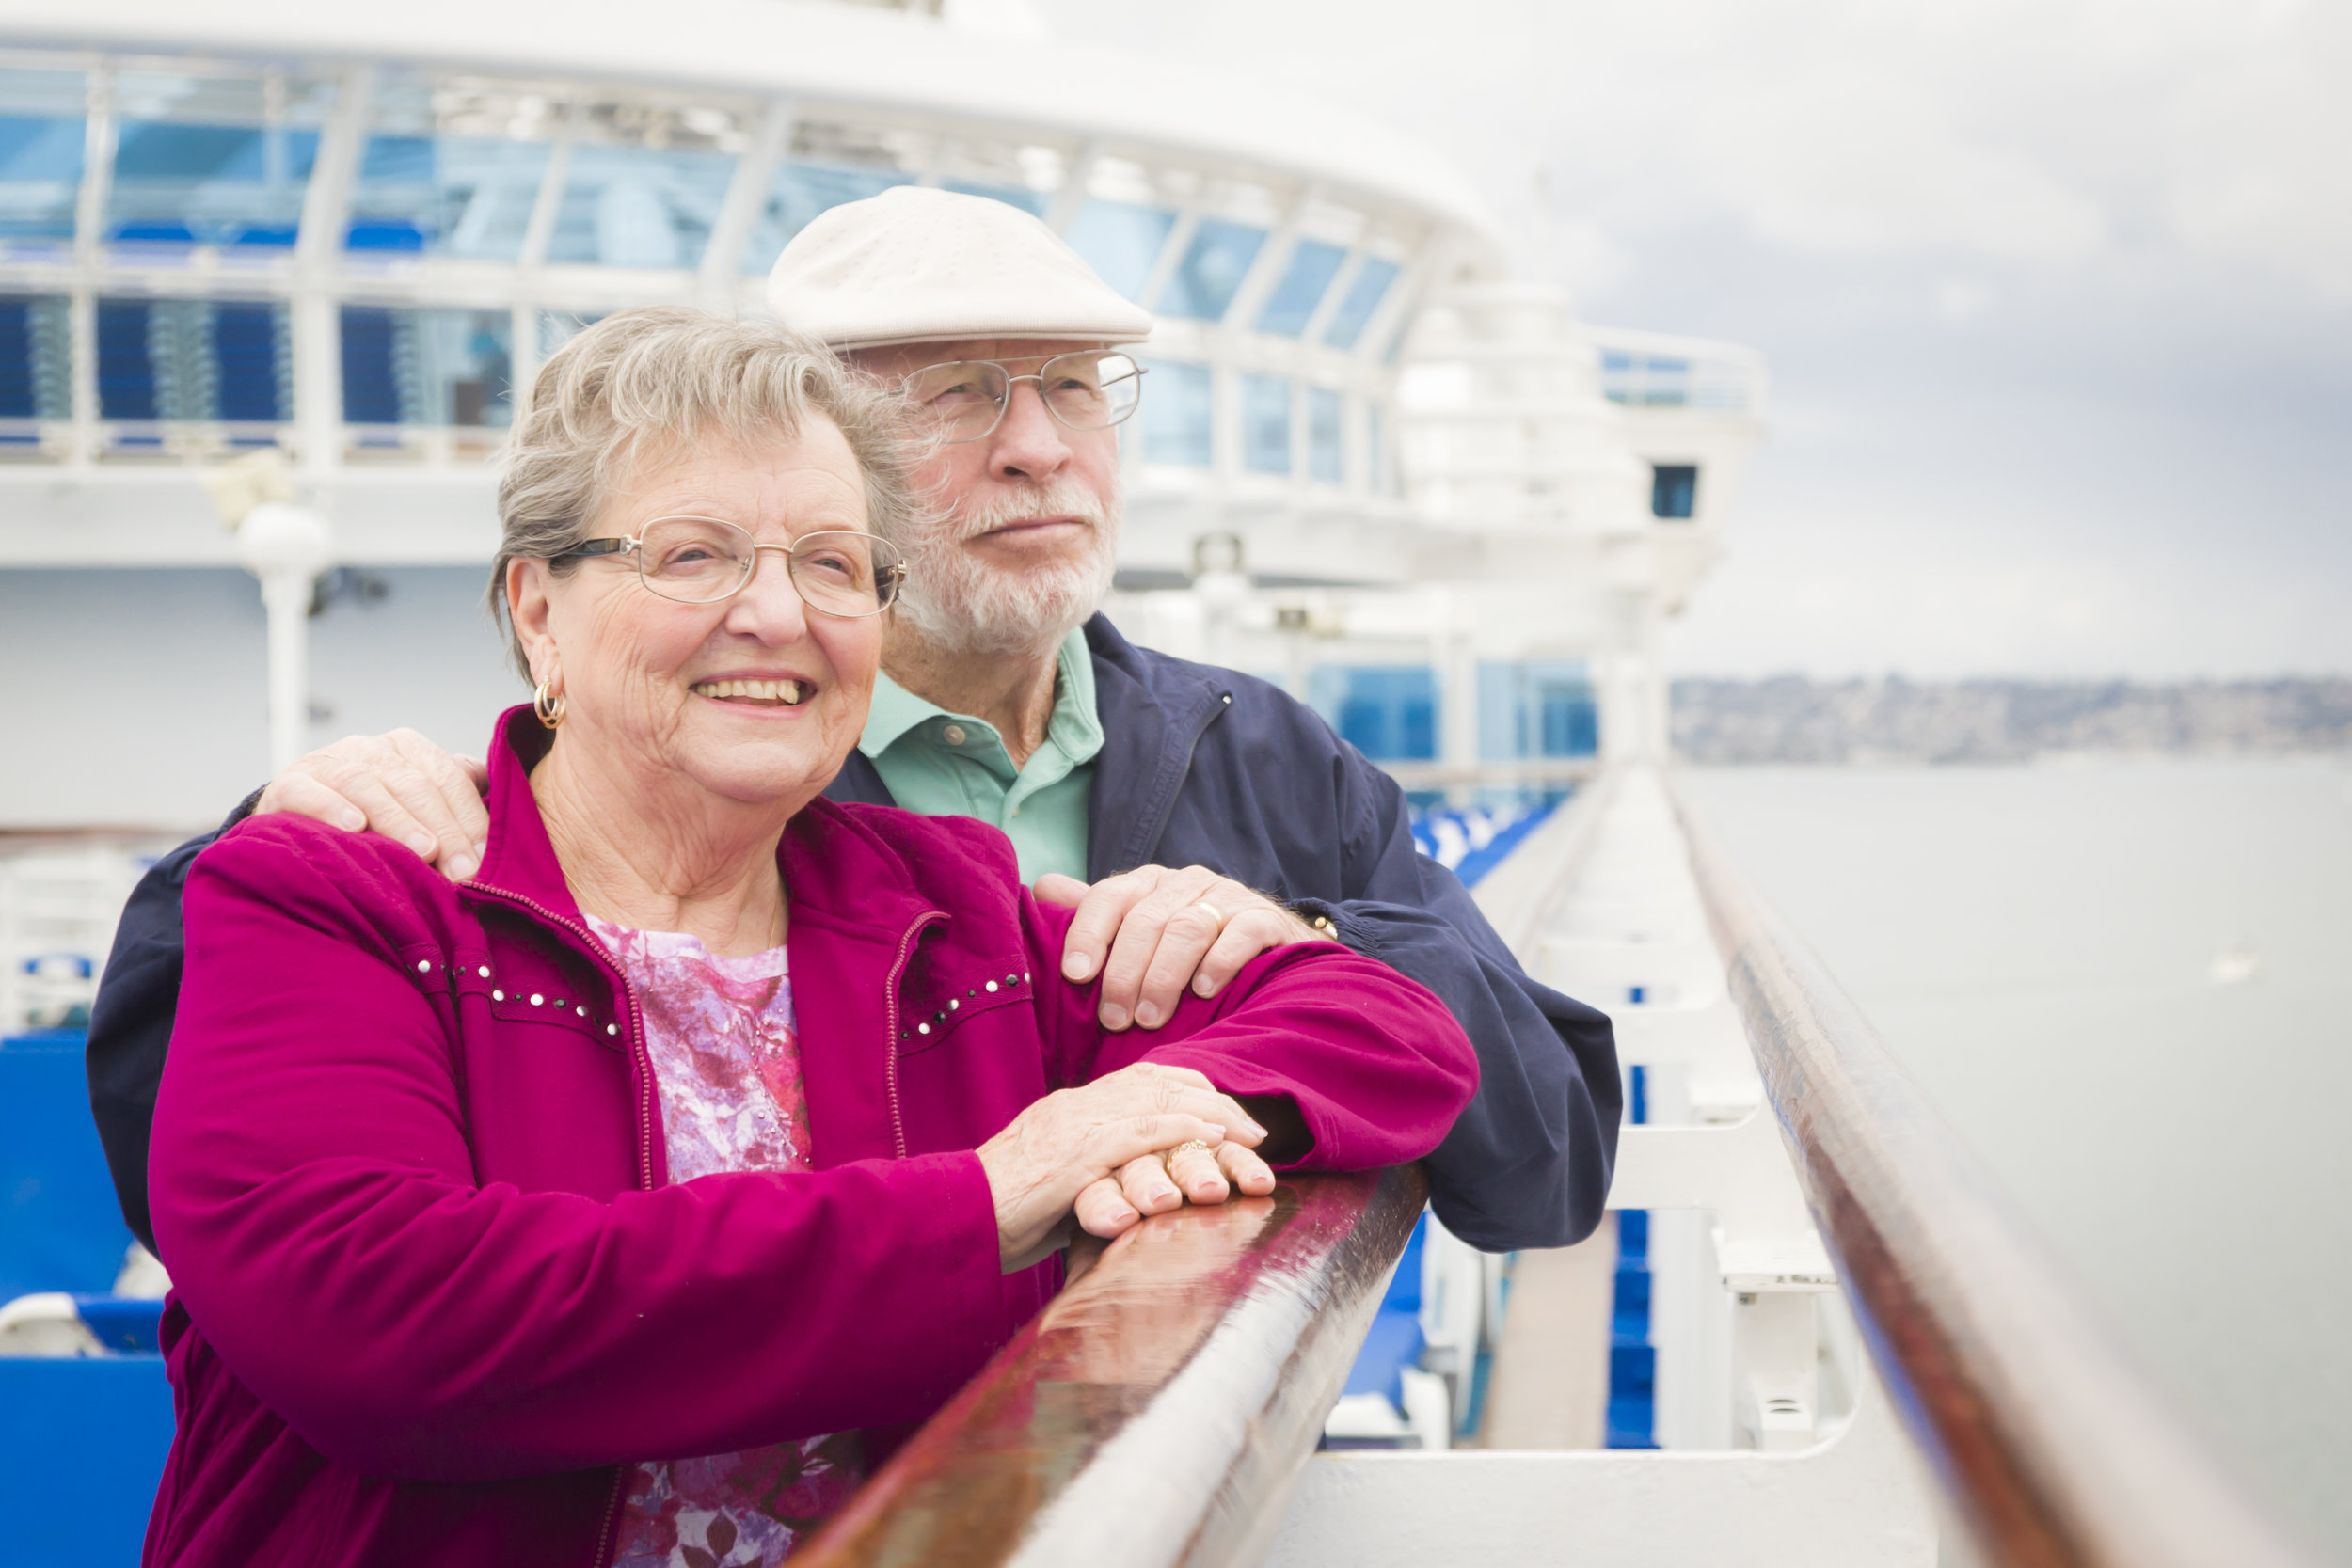 """EquiKey made it possible for us to take the trip we'd always dreamed of"" - Peter & Diane H."